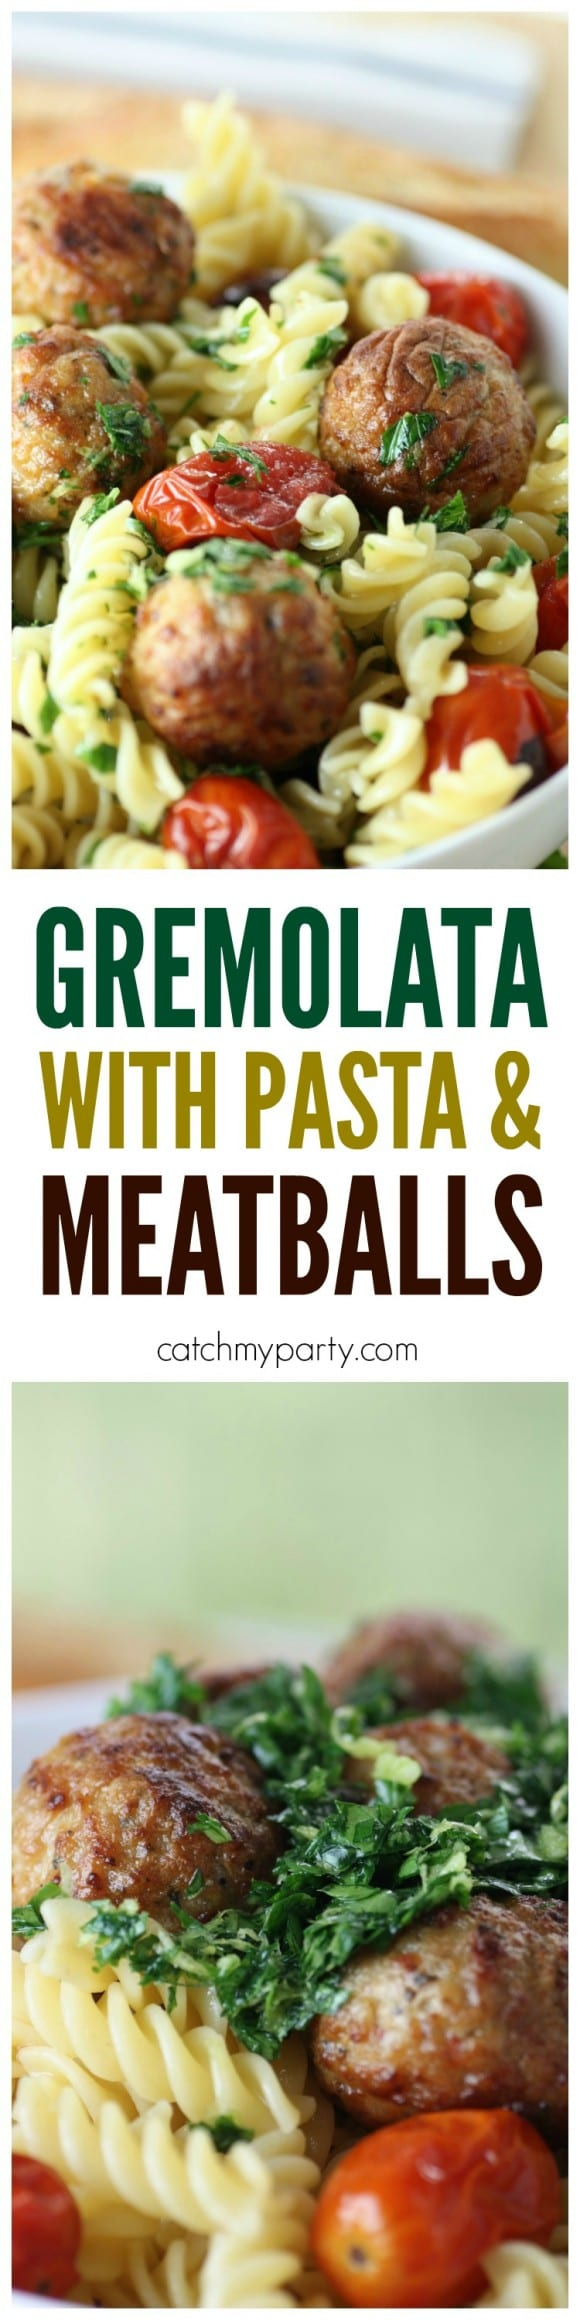 Easy gremolata recipe, perfect to serve with pasta and meatballs! | CatchMyParty.com